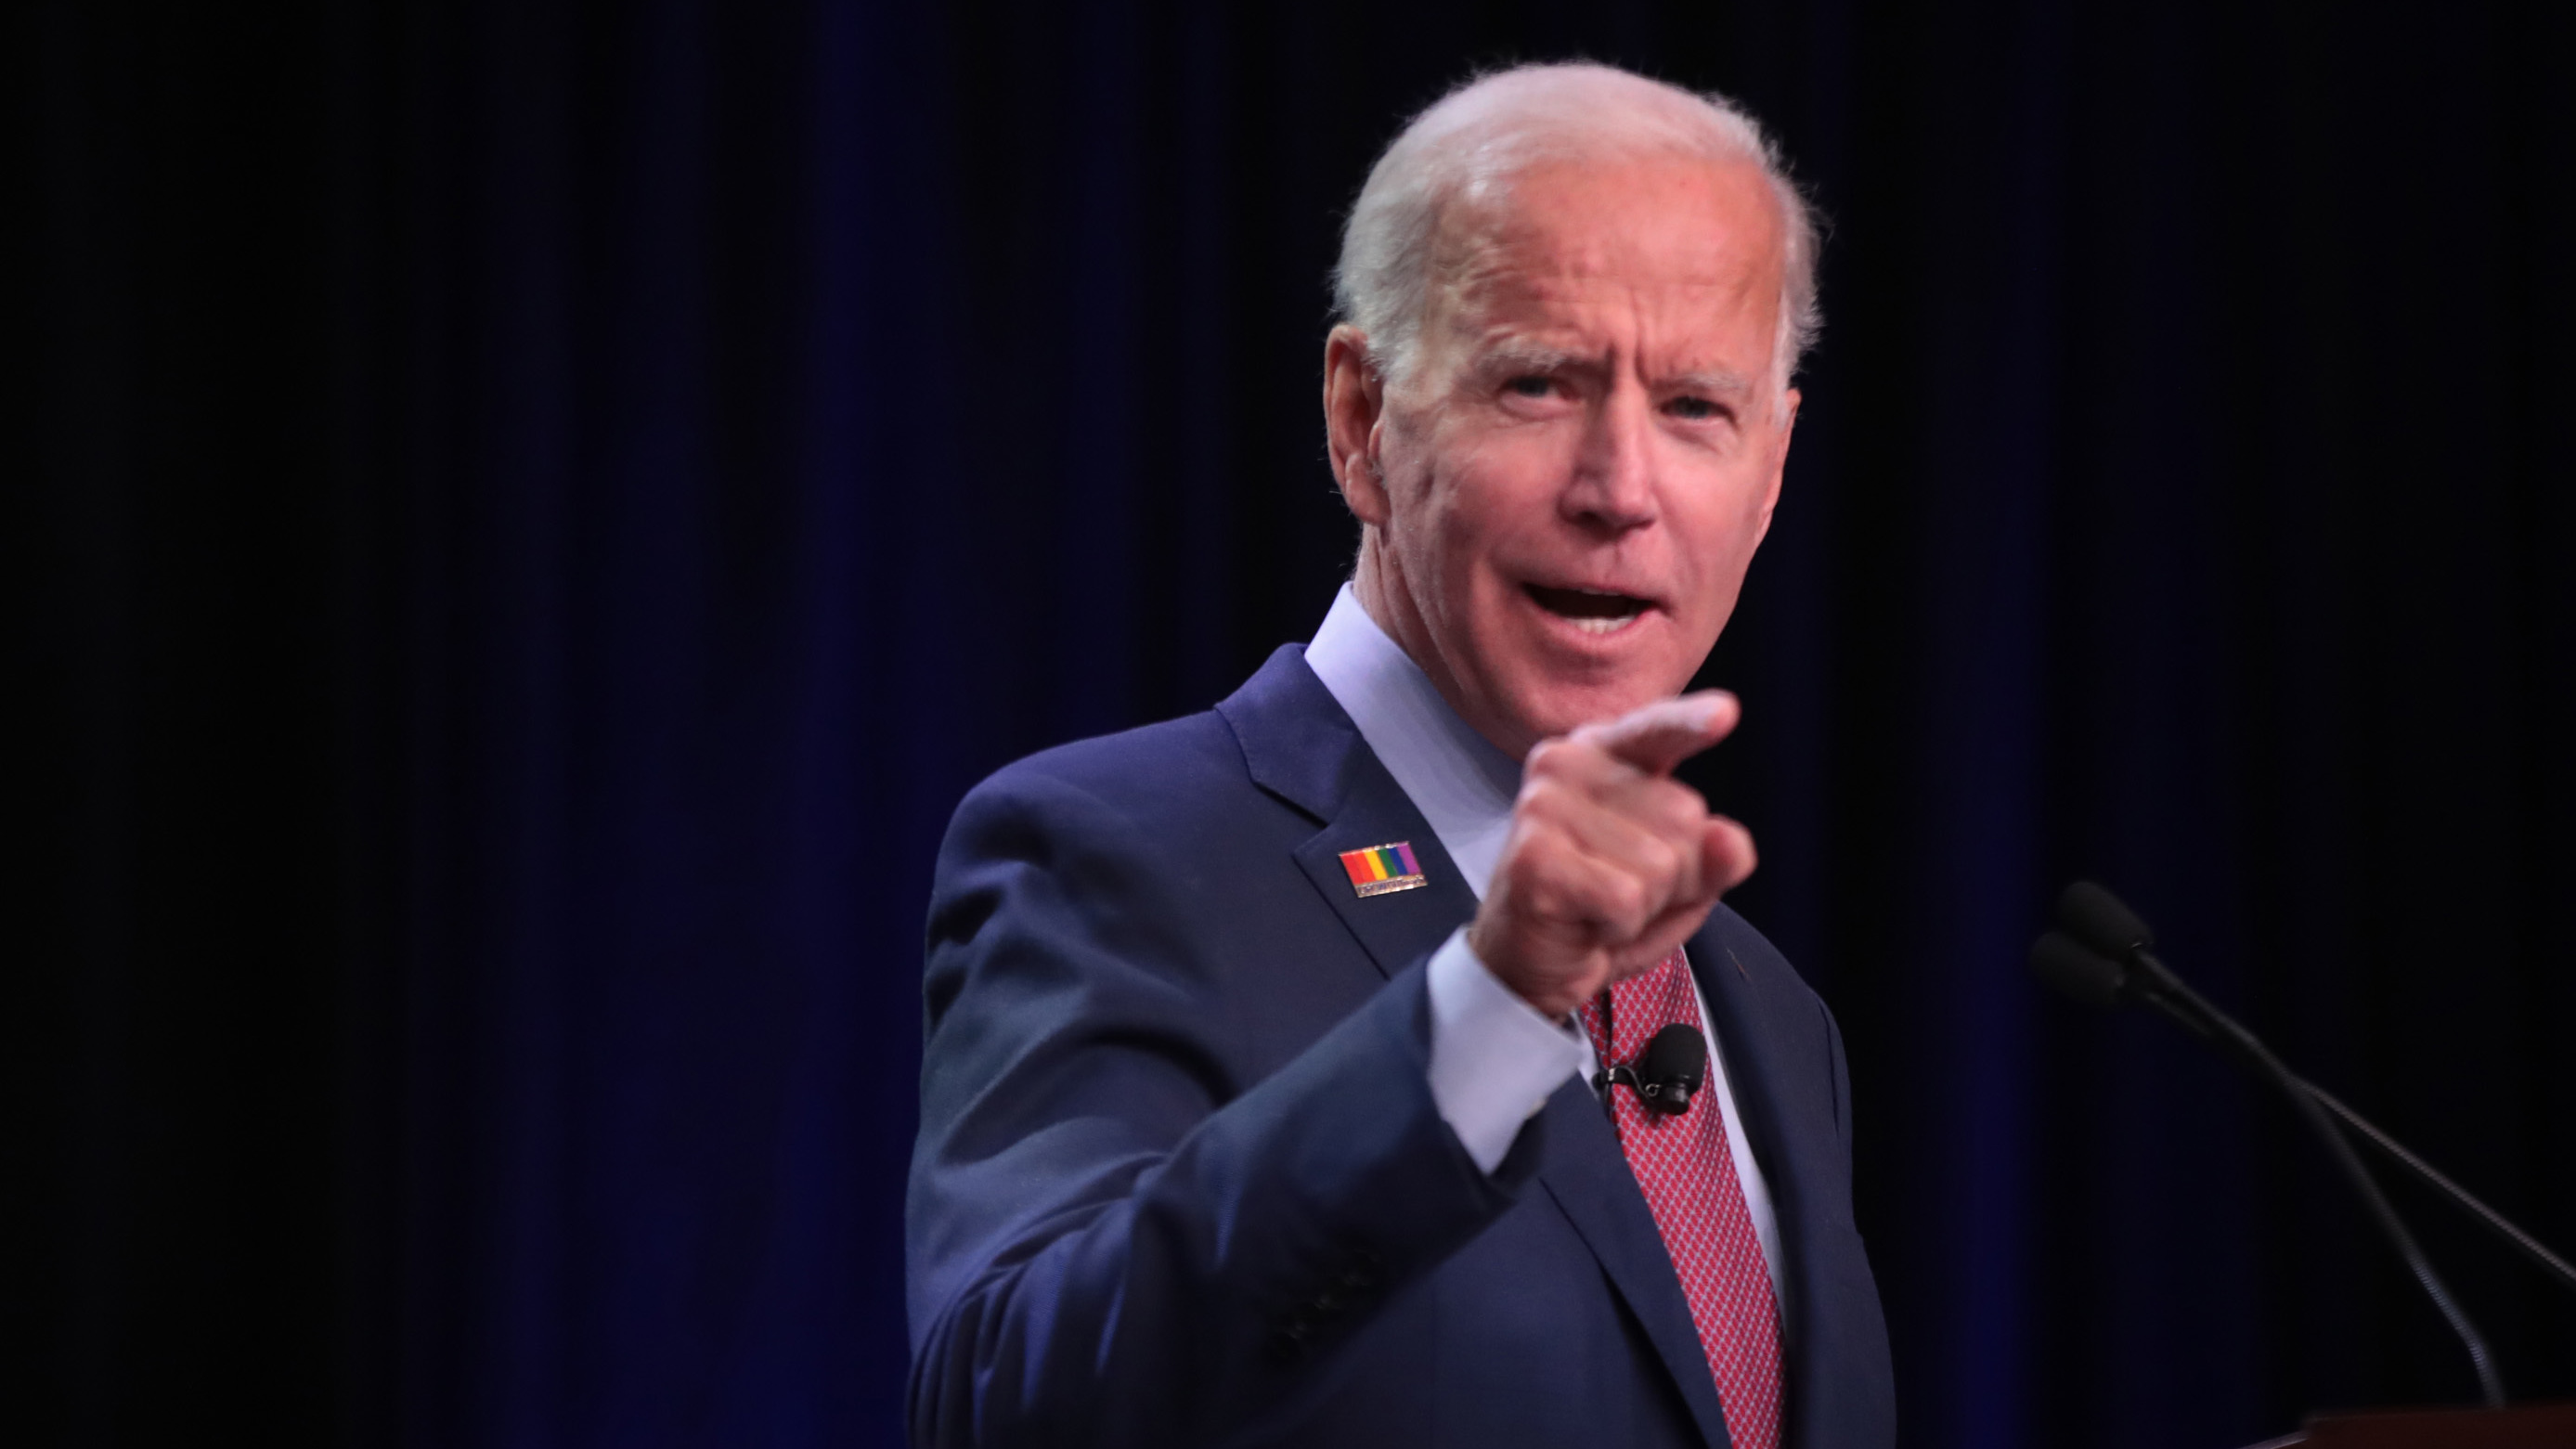 Biden Takes On Trump With A Sweeping Ethics Plan, Amid Push Back Over Ukraine